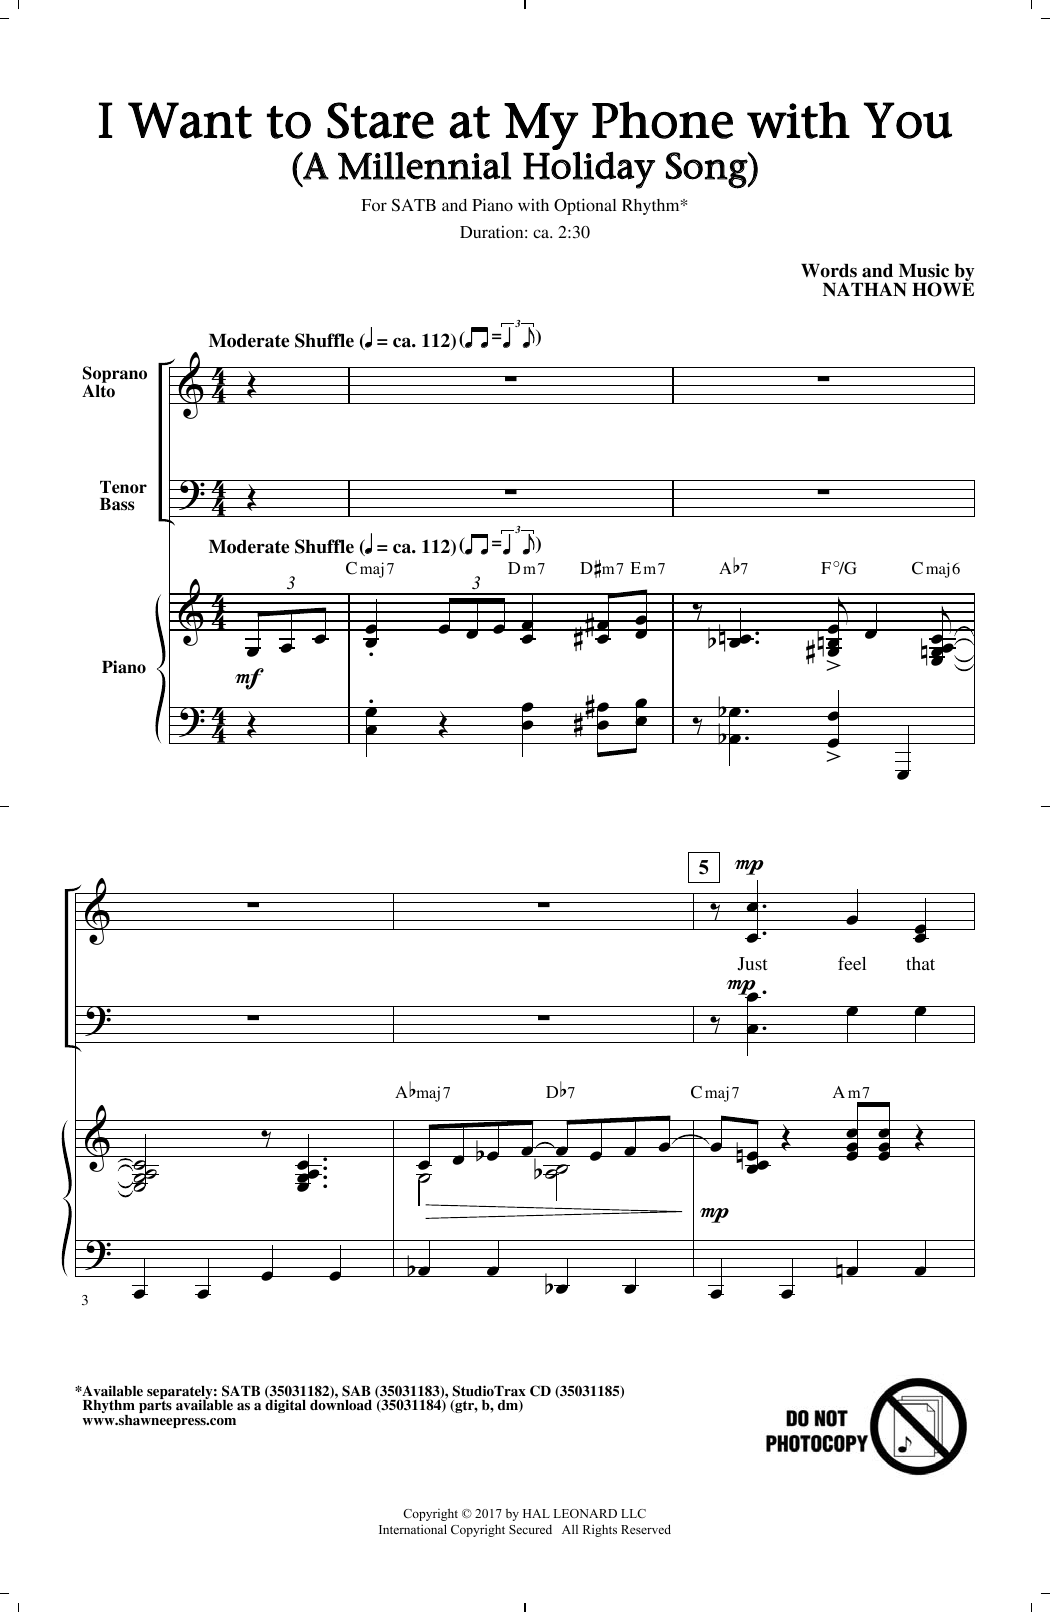 Nathan Howe I Want To Stare At My Phone With You (A Millennial Holiday Song) sheet music notes and chords. Download Printable PDF.